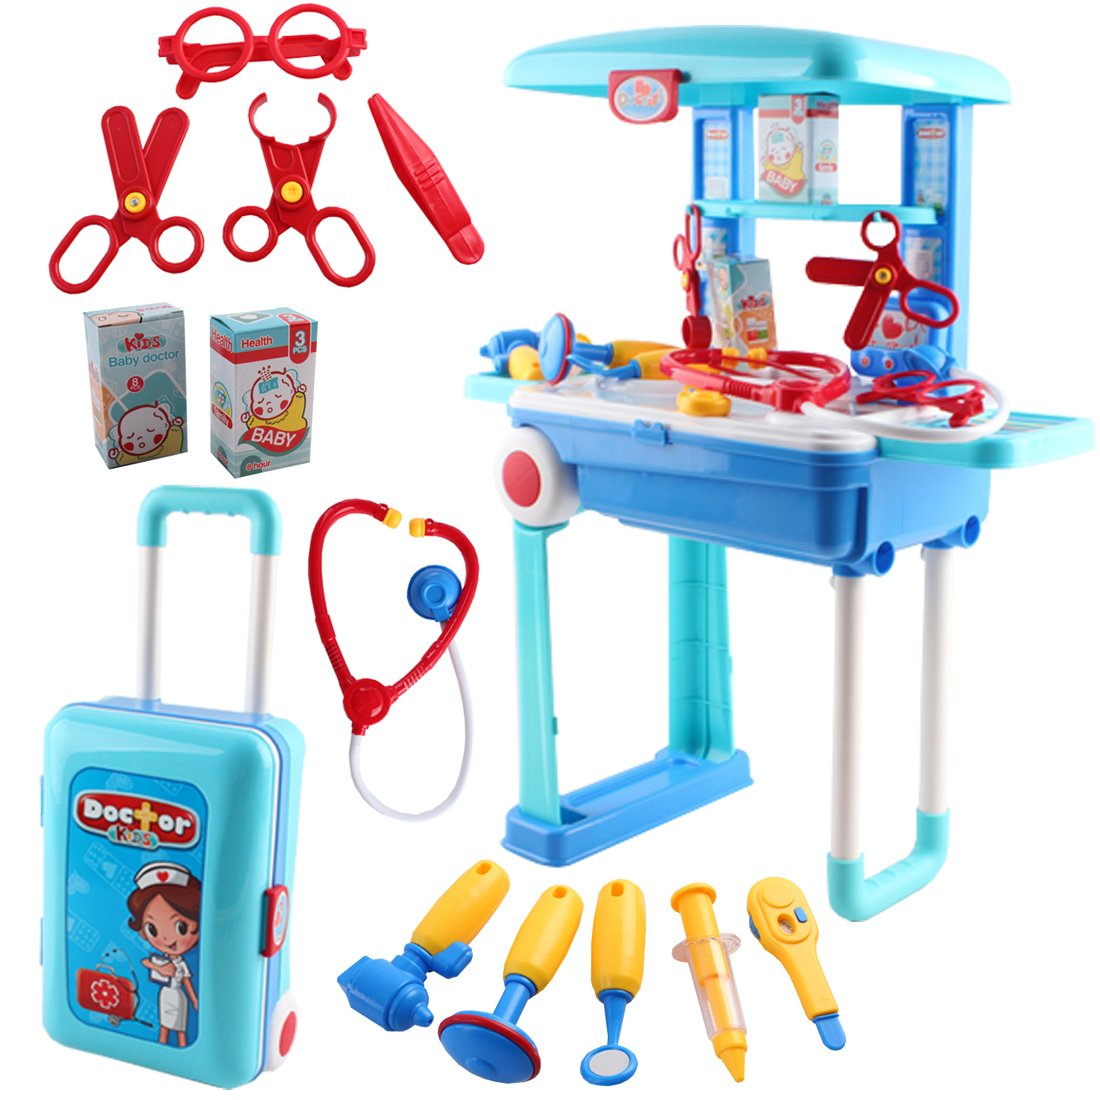 deAO Toys Doctor Kids Medical Center Hospital Convertible Suitcase Portable Role Play Set with Accessories